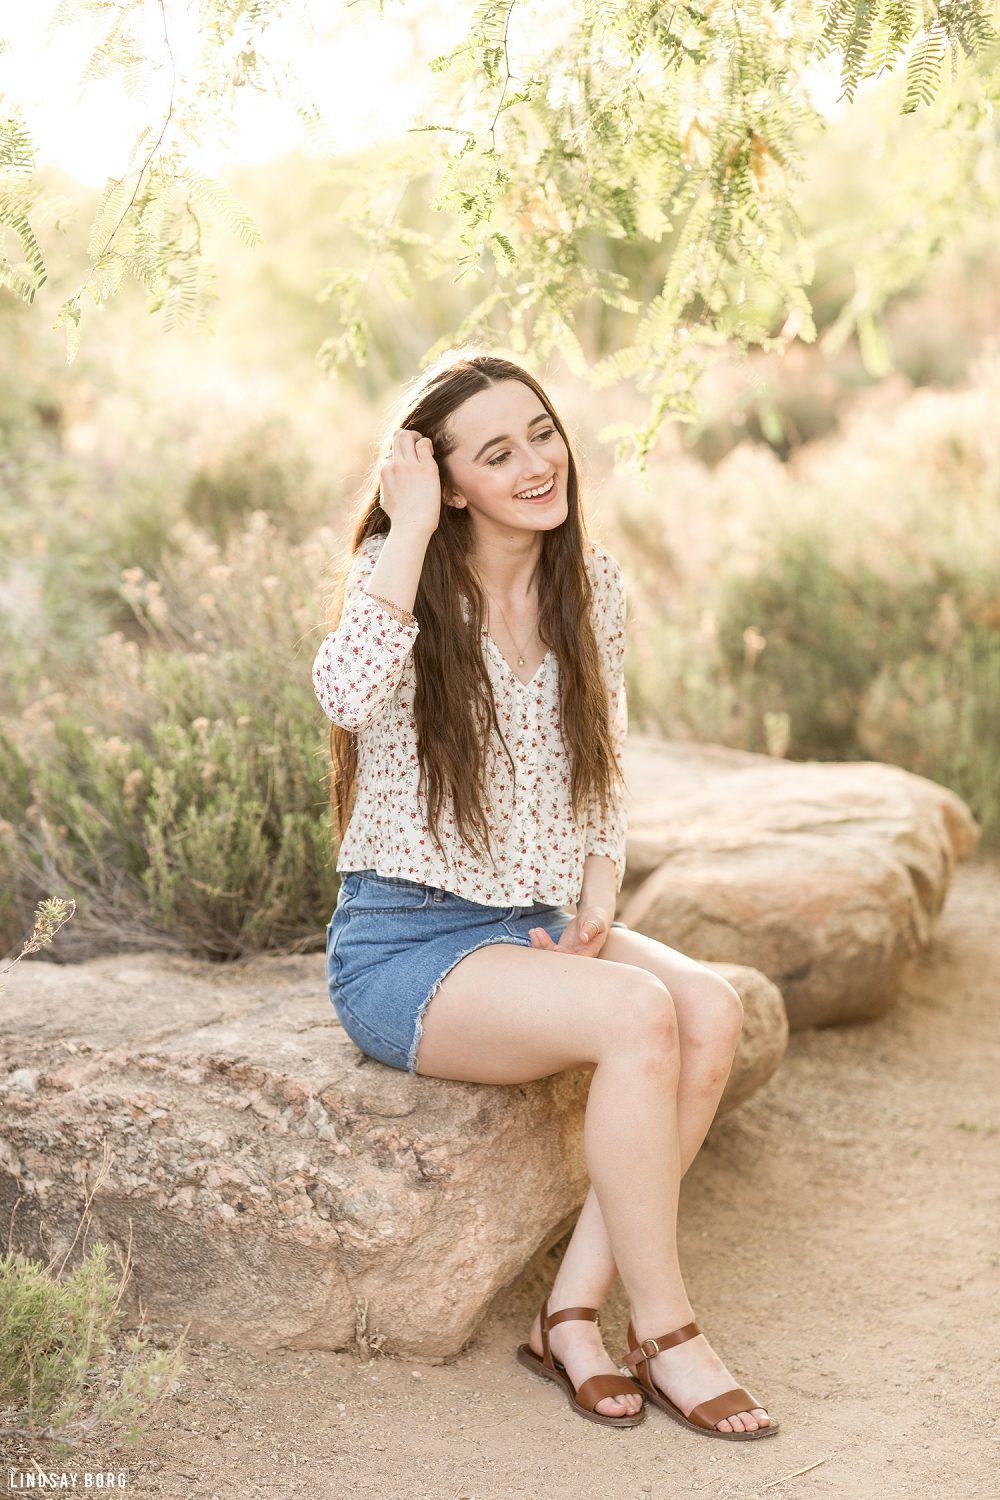 Lindsay-Borg-Photography-arizona-senior-wedding-portrait-photographer-az_3975.jpg